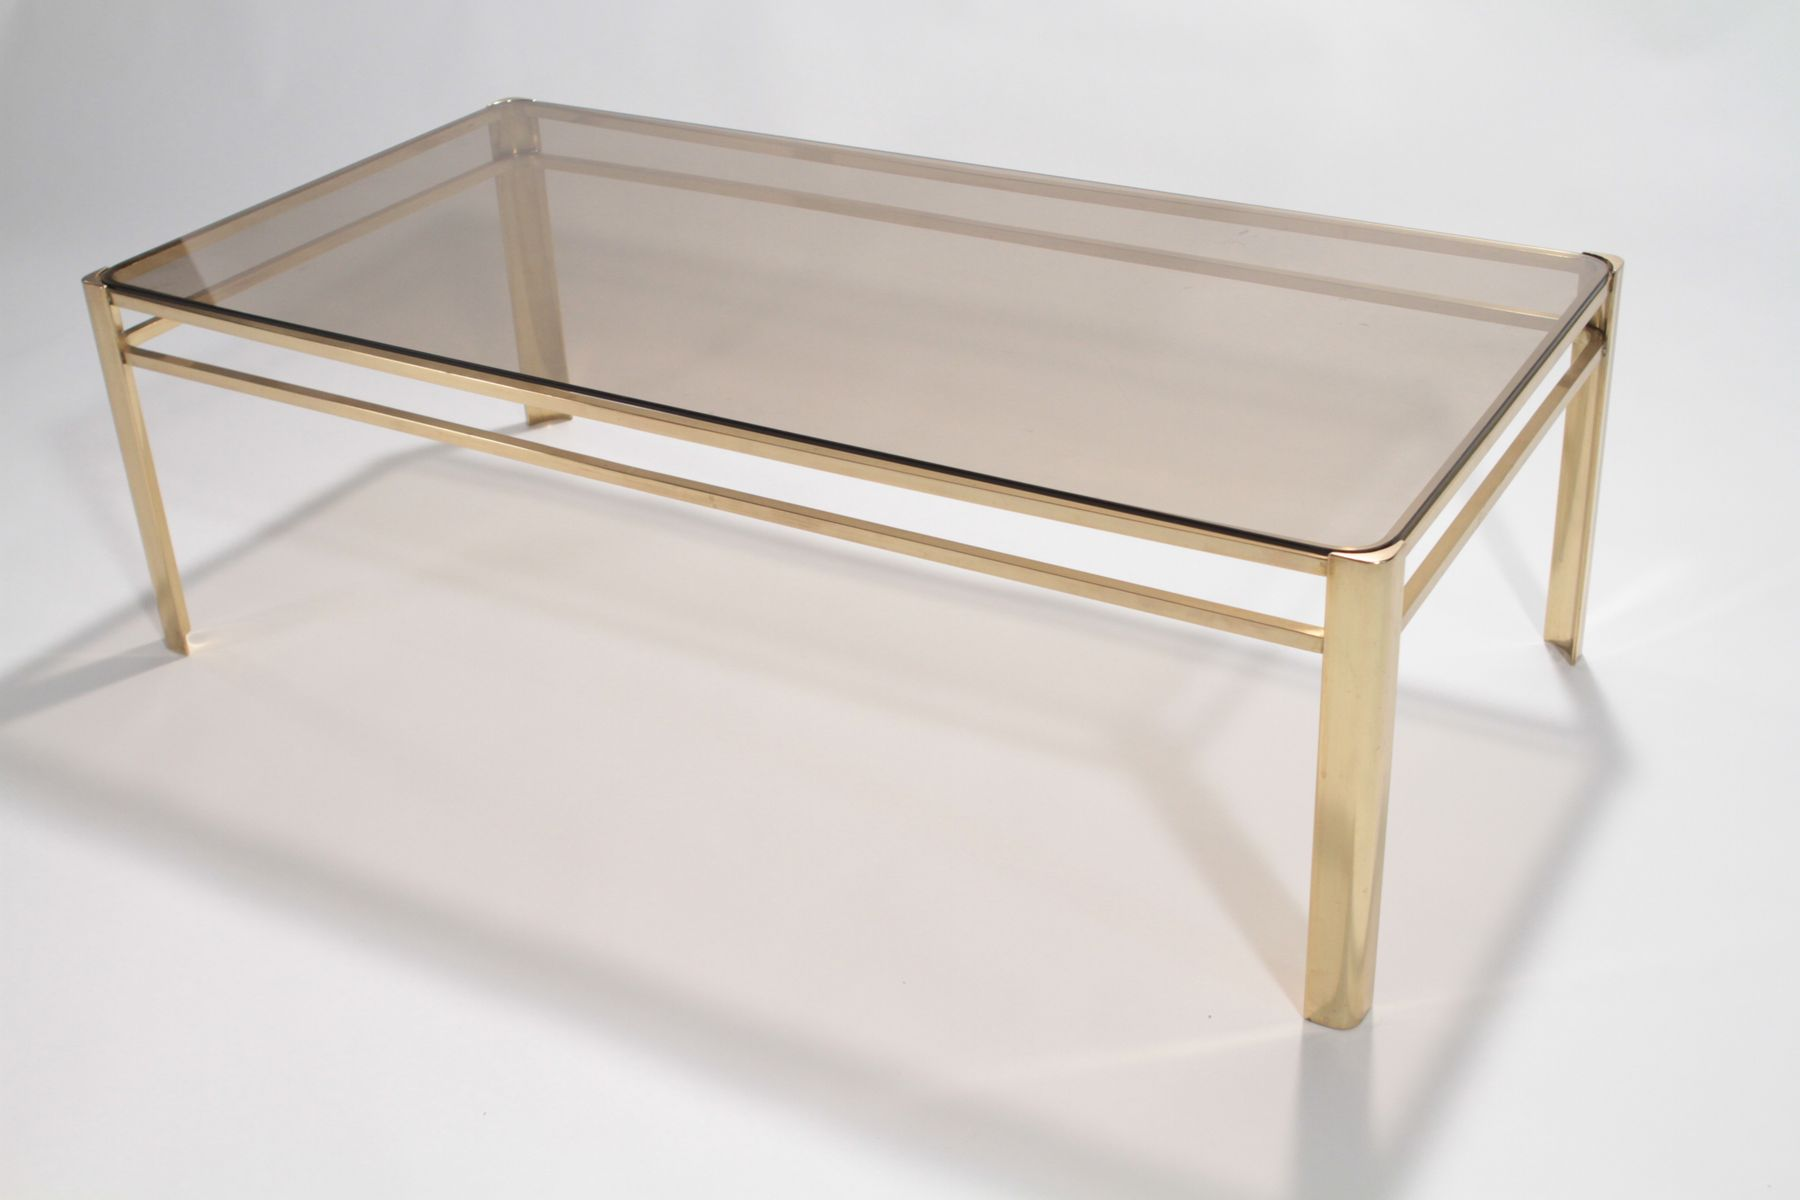 Bronze coffee table by jacques quinet for broncz 1960s for sale at pamono Bronze coffee tables